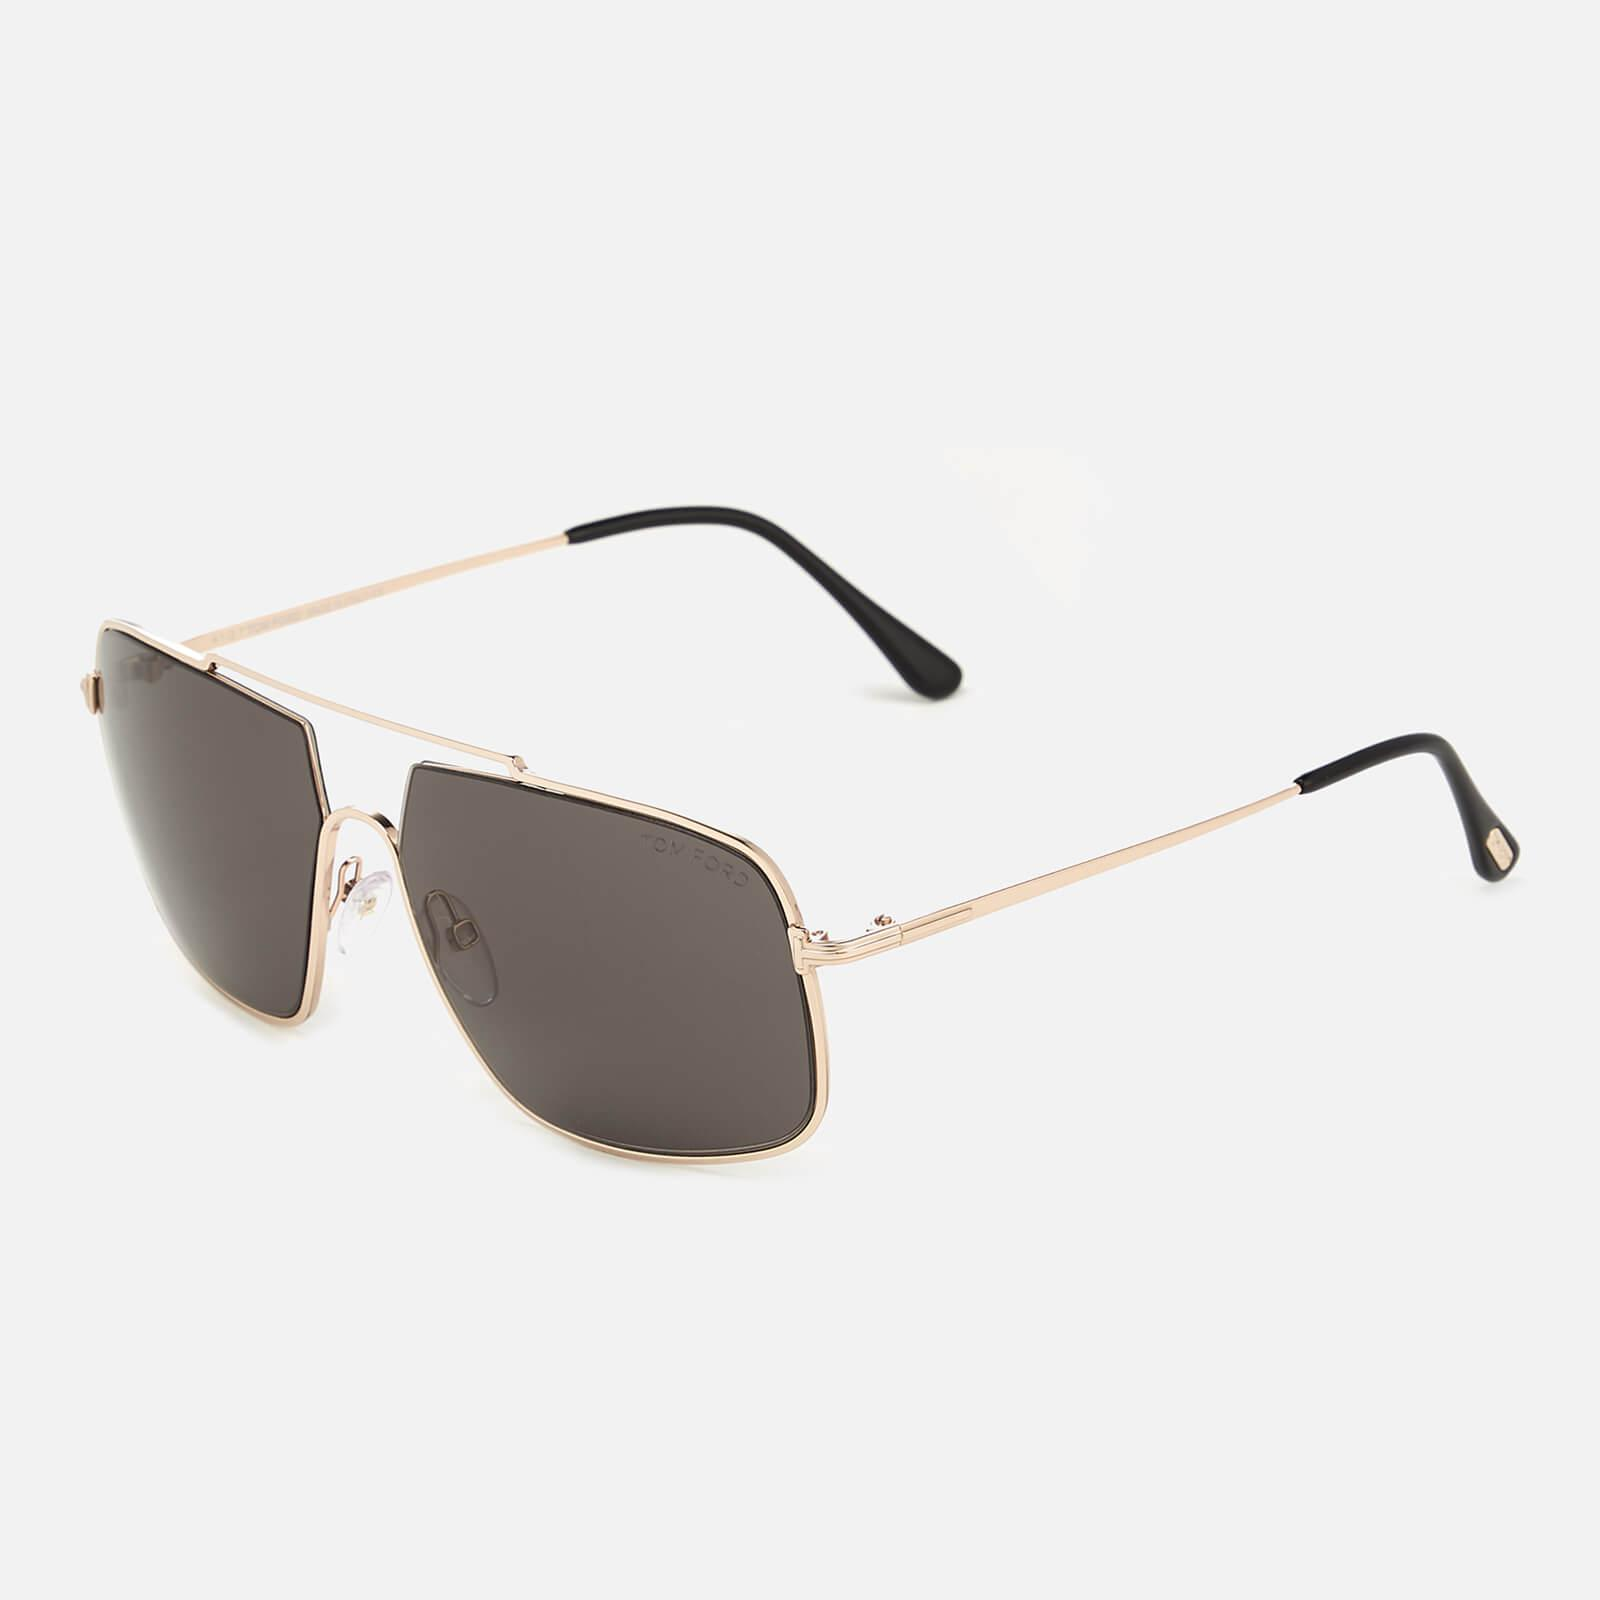 e4cf9136af5 Tom Ford - Multicolor Aiden Aviator Style Sunglasses for Men - Lyst. View  fullscreen